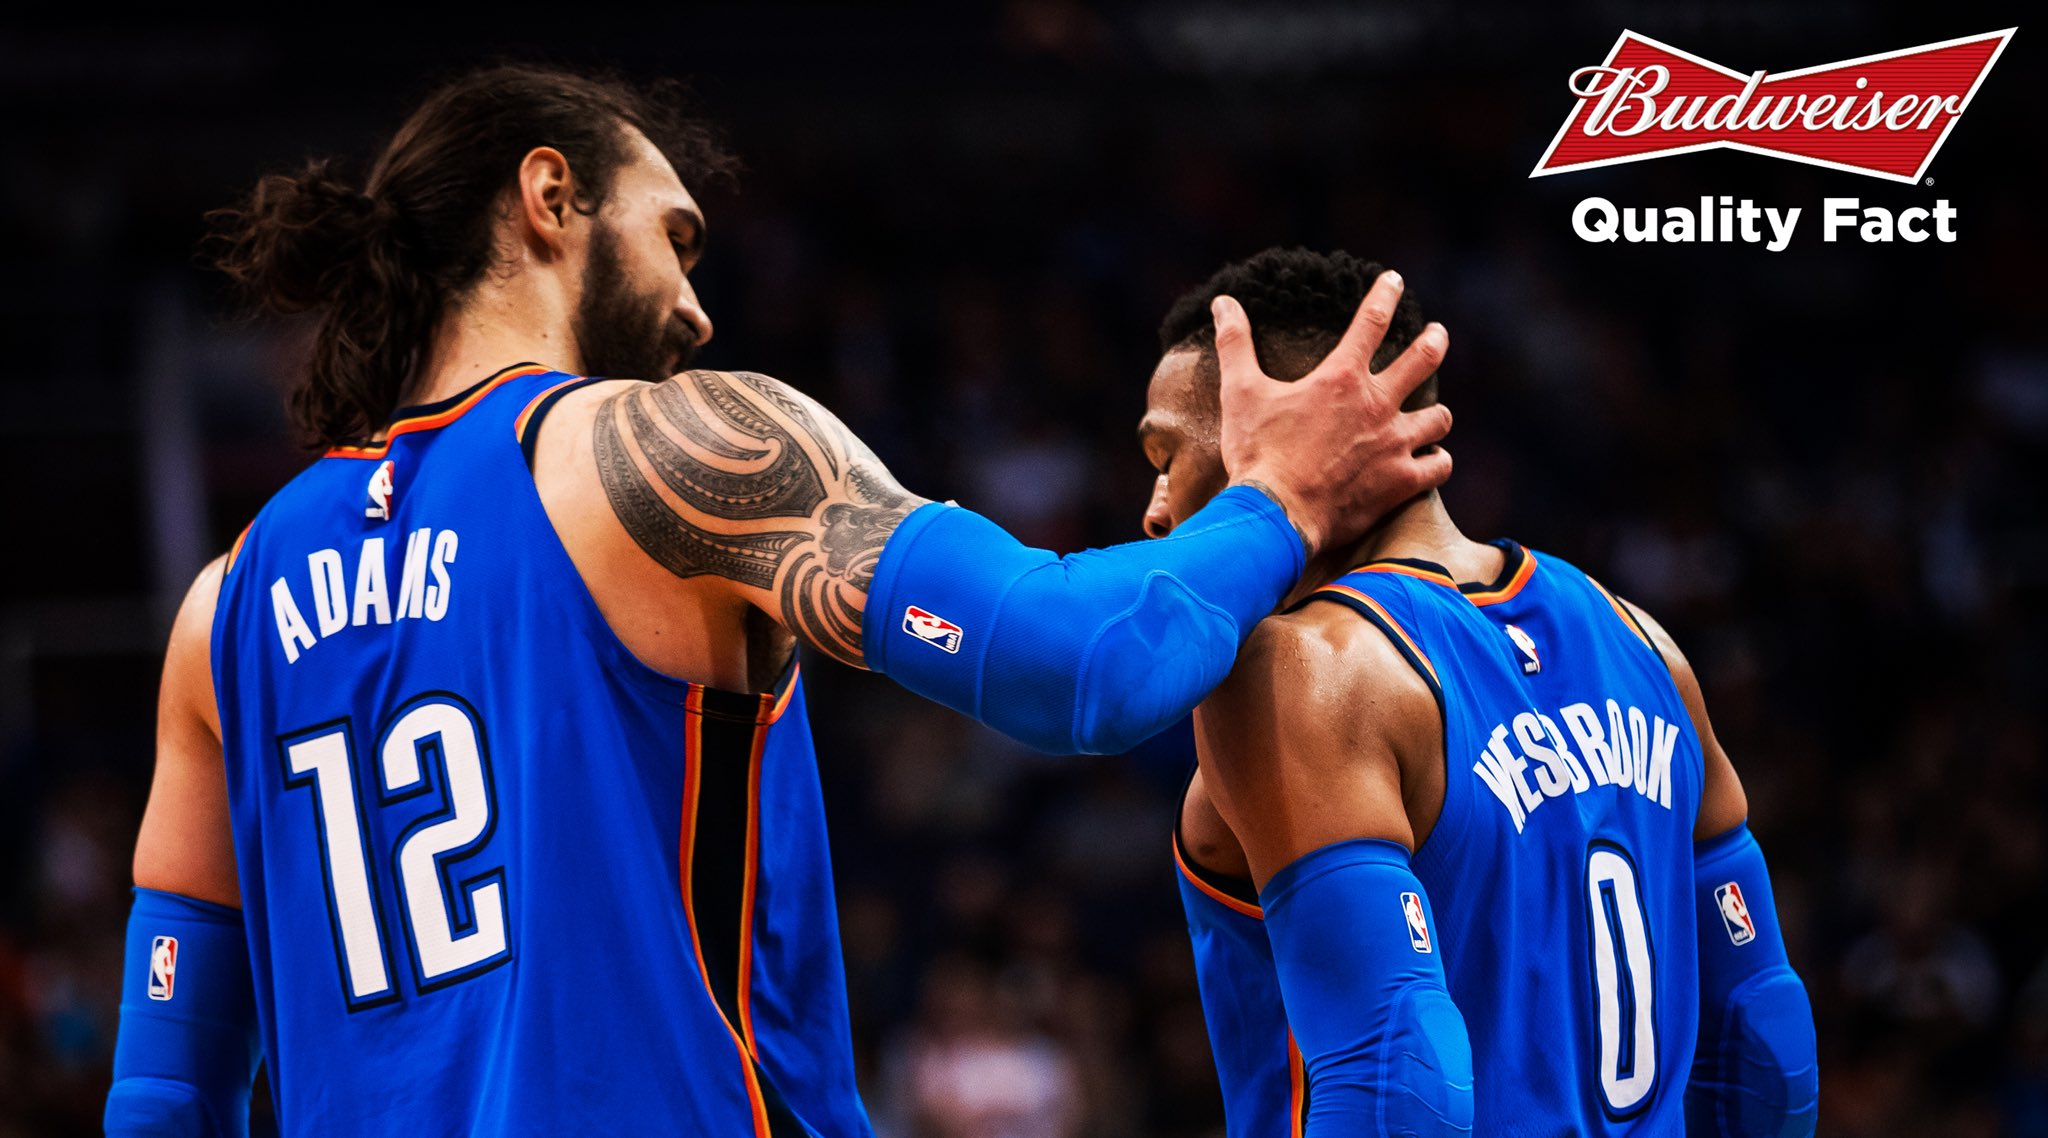 Russell Westbrook to Steven Adams is the NBA's leading assist combo with 222 this season. https://t.co/fvtpv5mASB